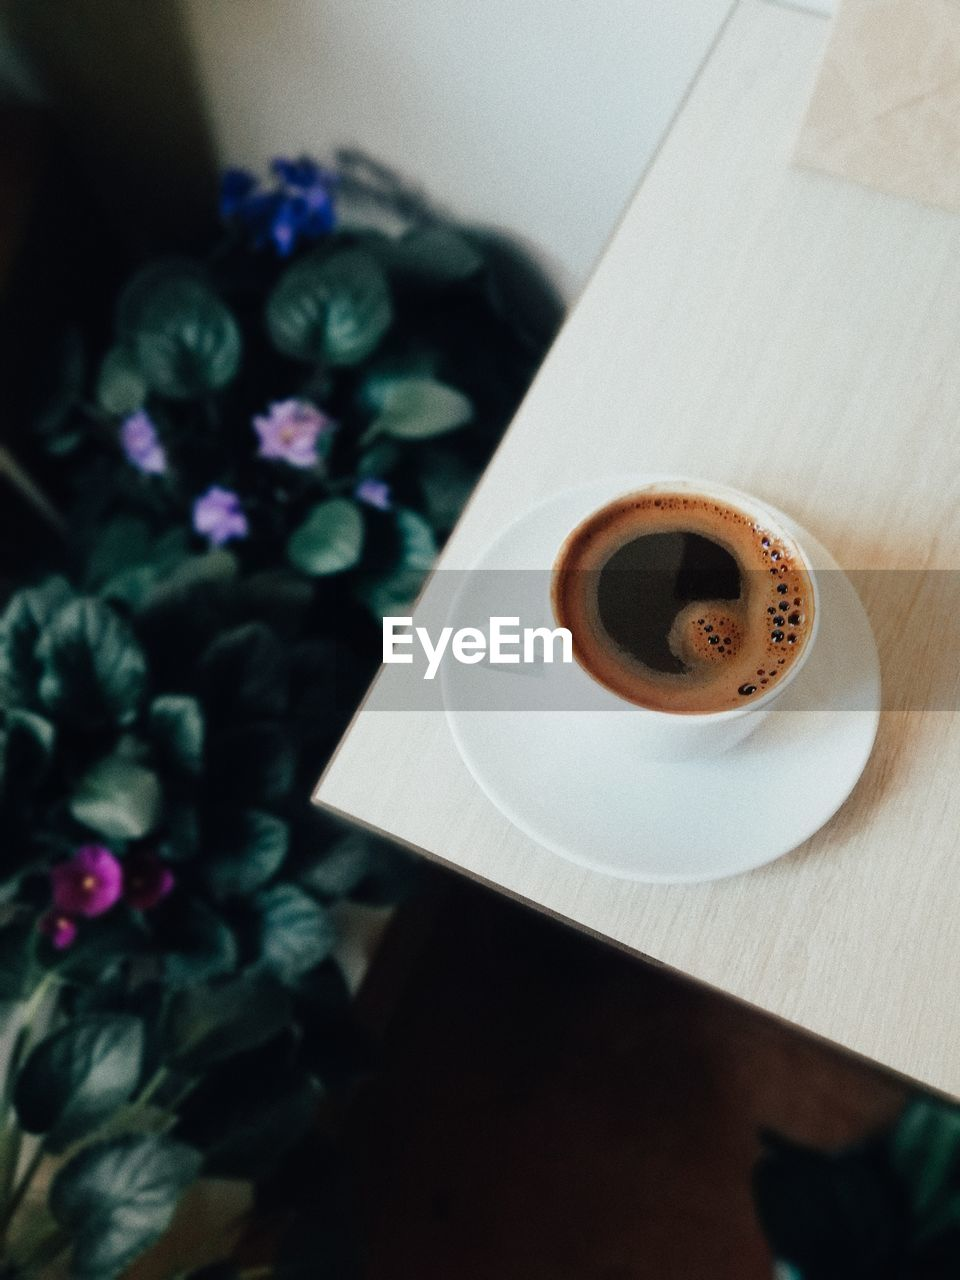 HIGH ANGLE VIEW OF COFFEE CUP ON WHITE TABLE